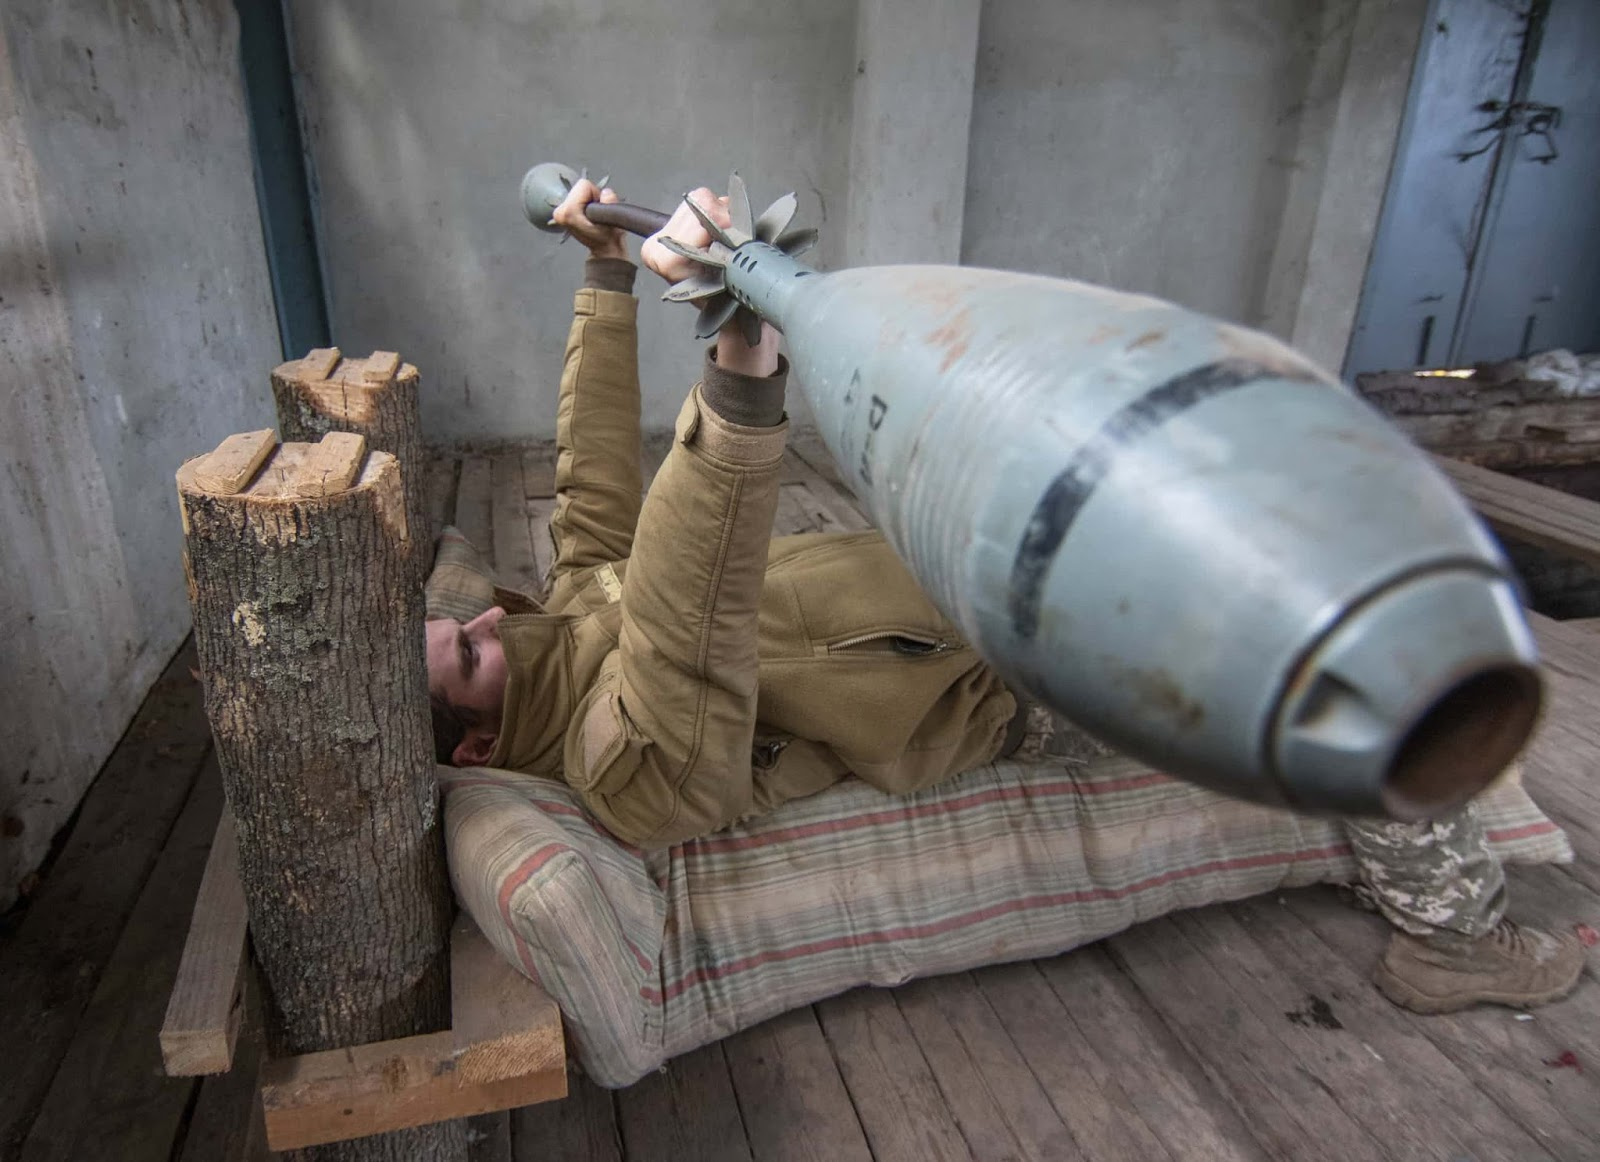 25 Of The Most Intriguing Pictures Of 2017 - A Ukrainian serviceman exercises with weights made from mortars